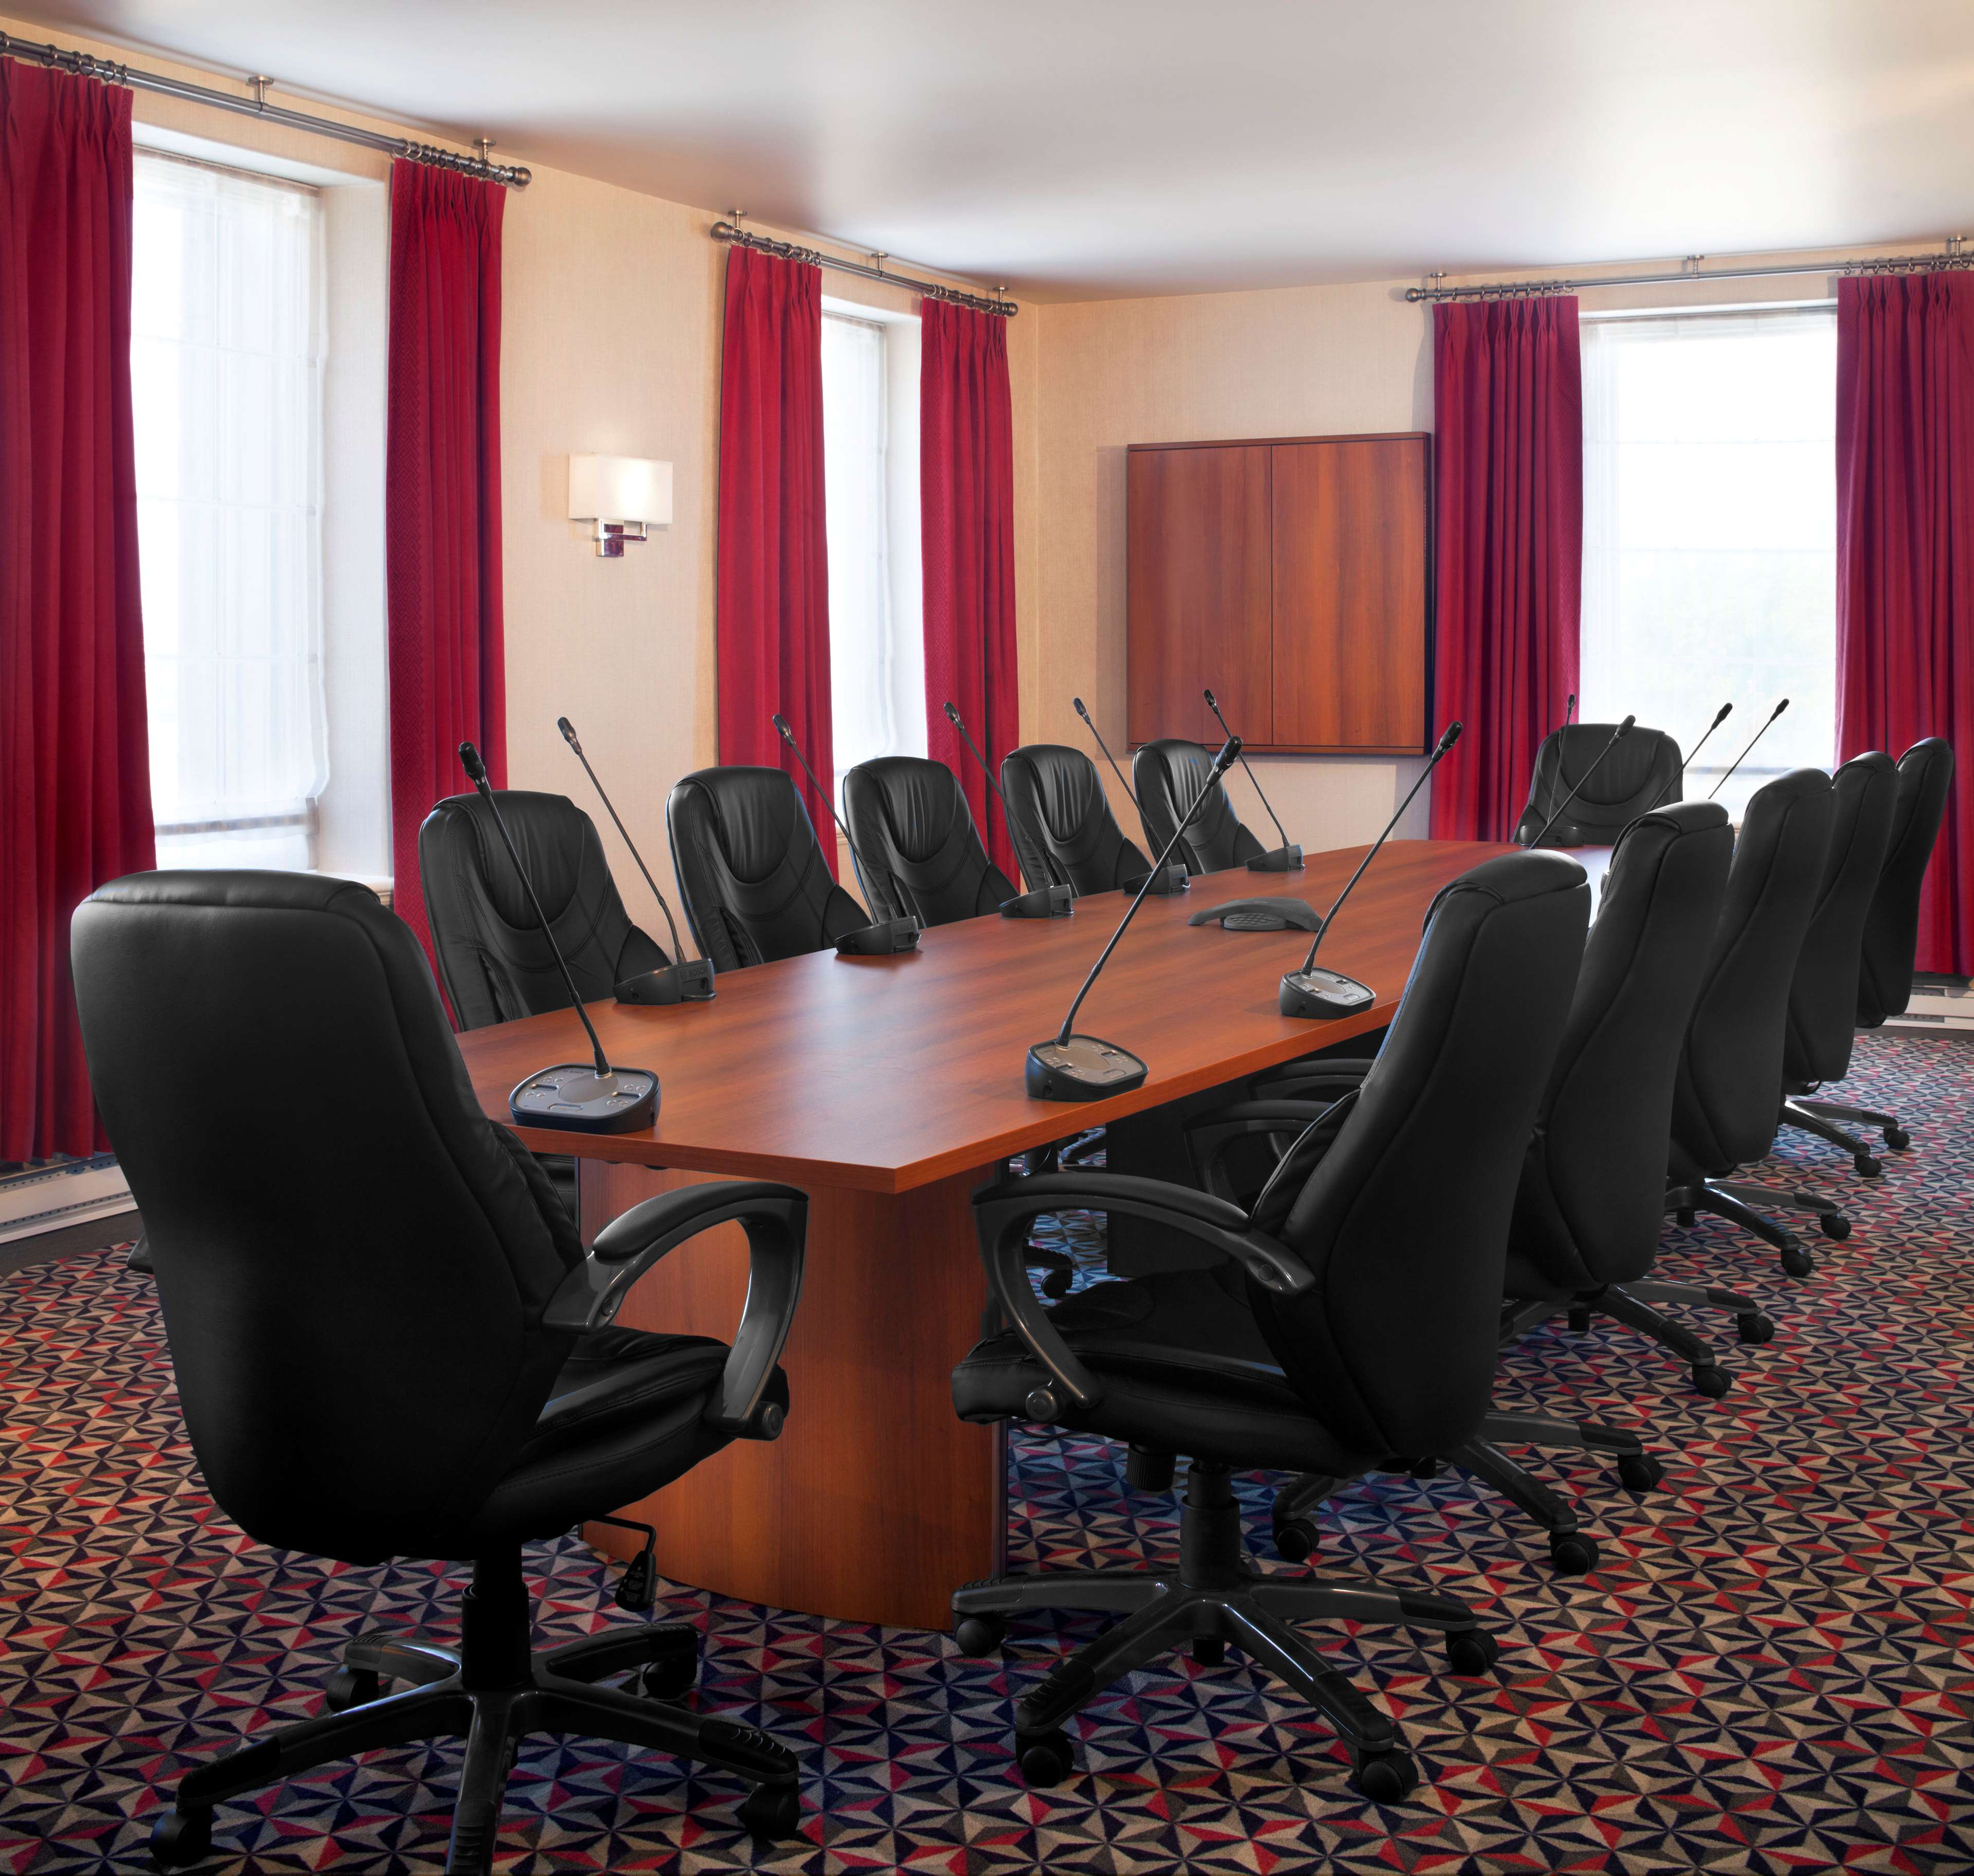 Four Points by Sheraton Hotel & Conference Centre Gatineau-Ottawa à Gatineau: Executive Boardroom